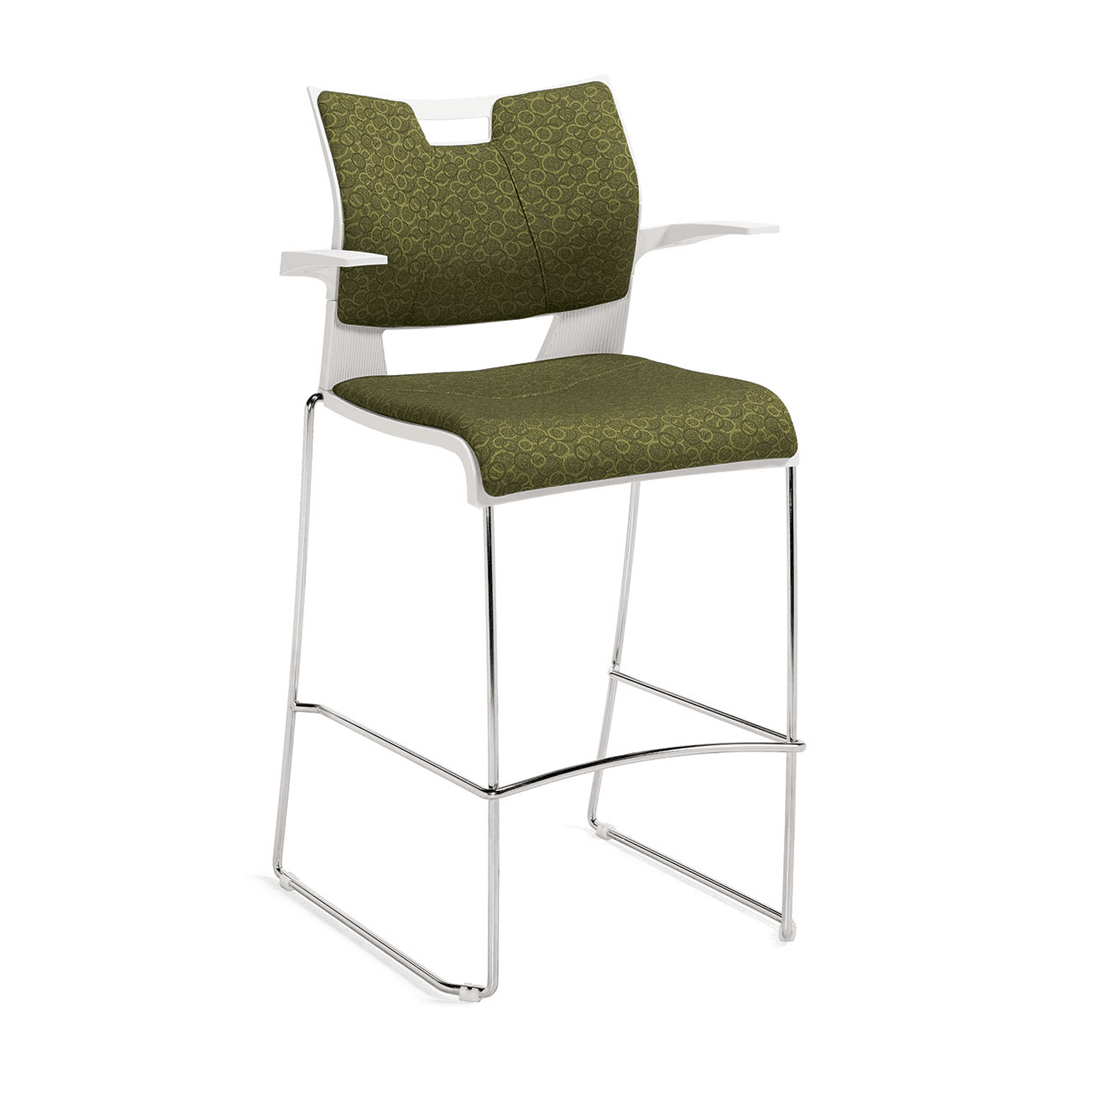 Global-Duet-Stool-Arms-fabric